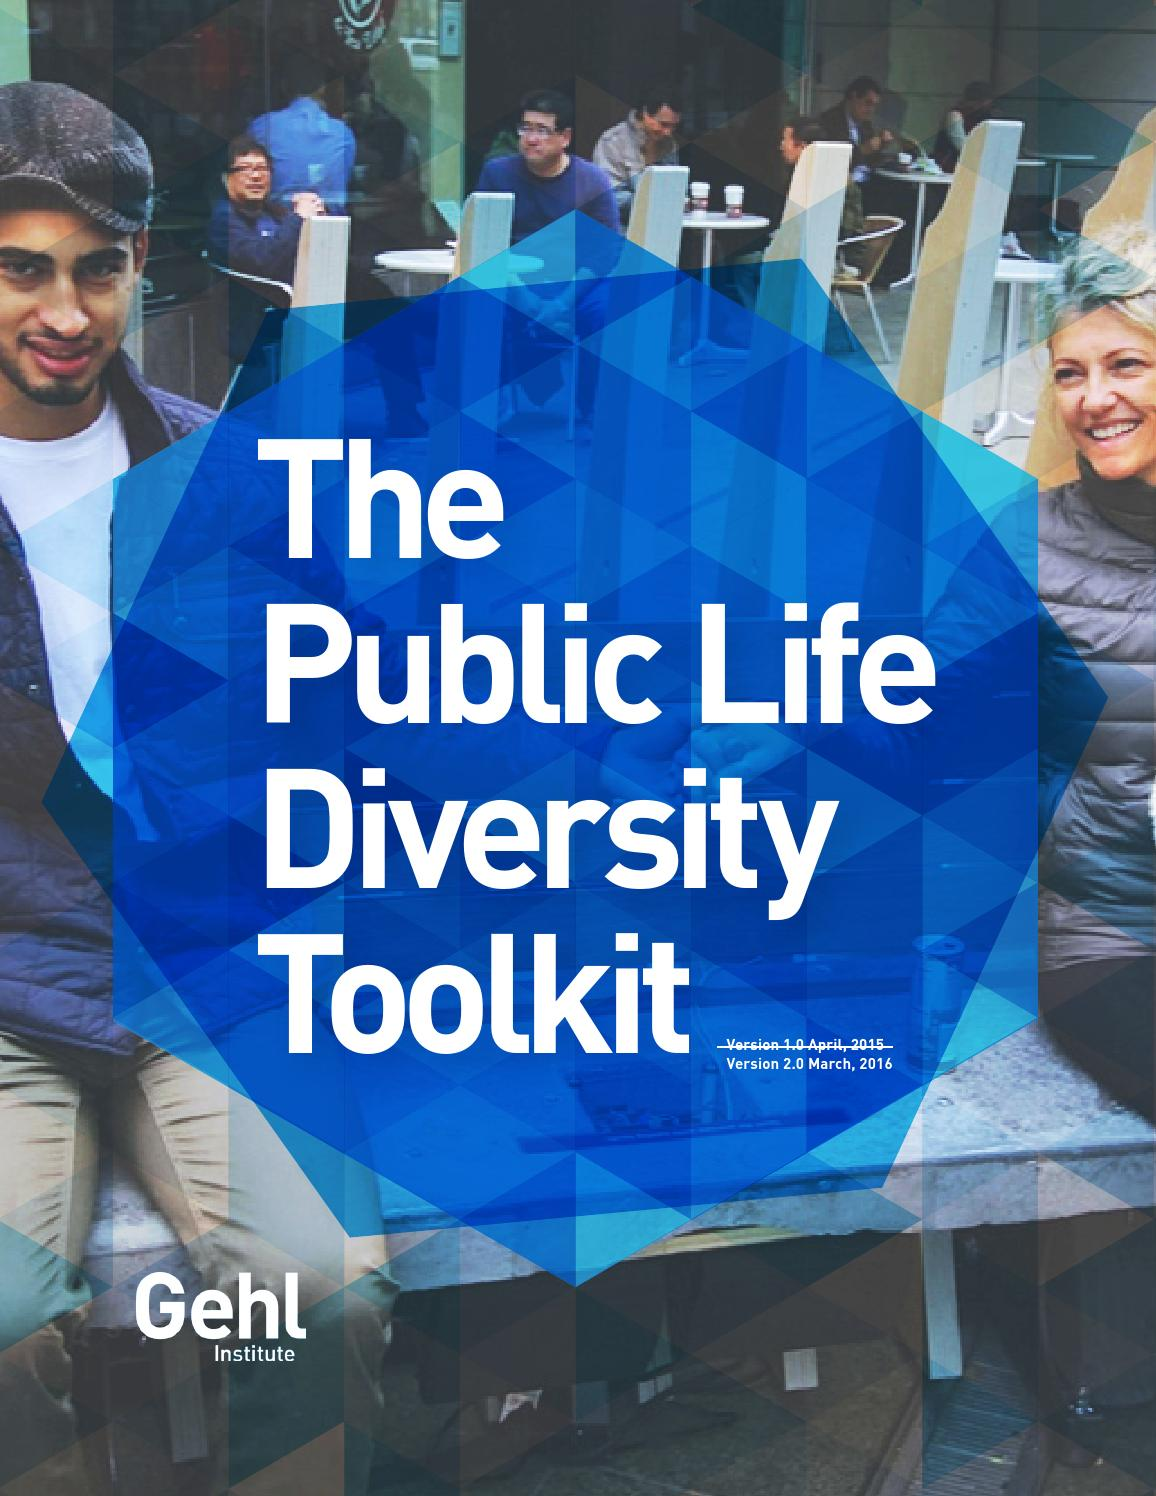 The Public Life Diversity Toolkit 2 0 by Gehl Institute - issuu